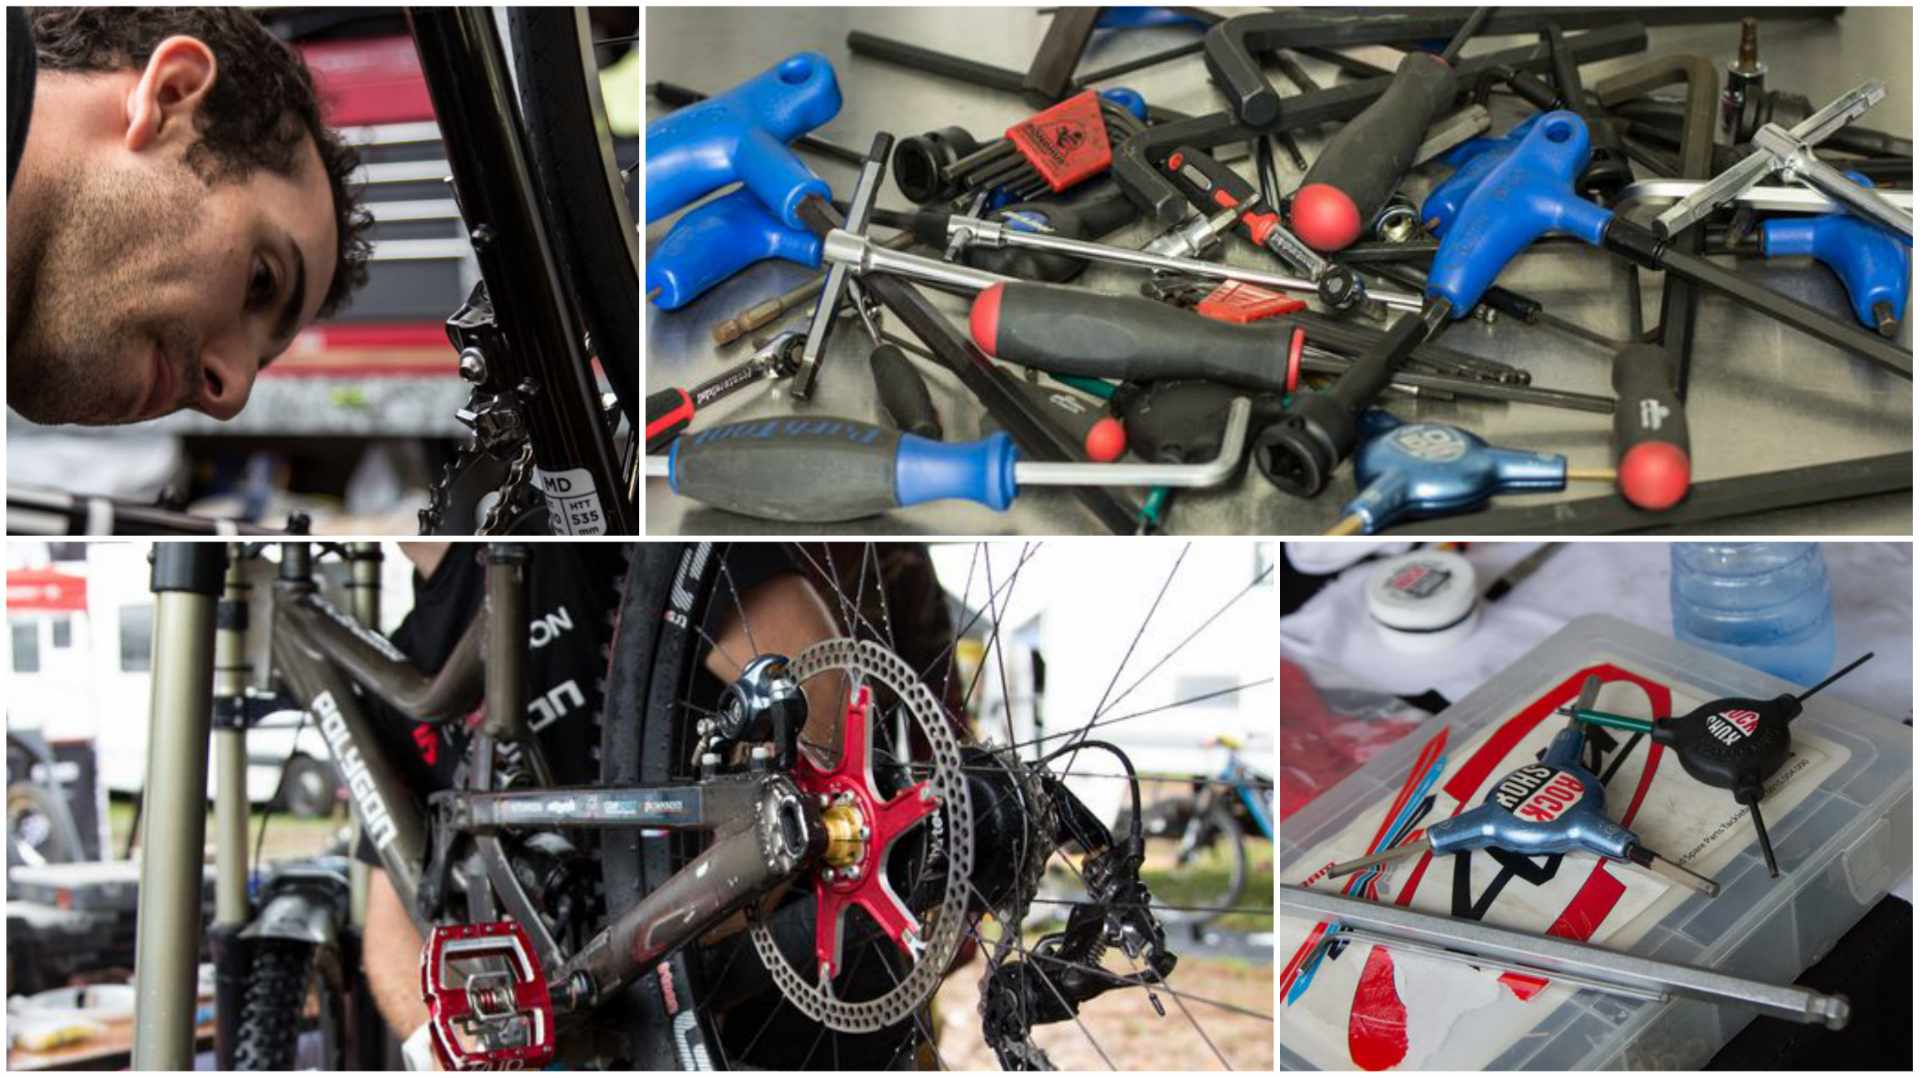 Home Wrench gives you the inside tips you need to boss at-home bike tinkering